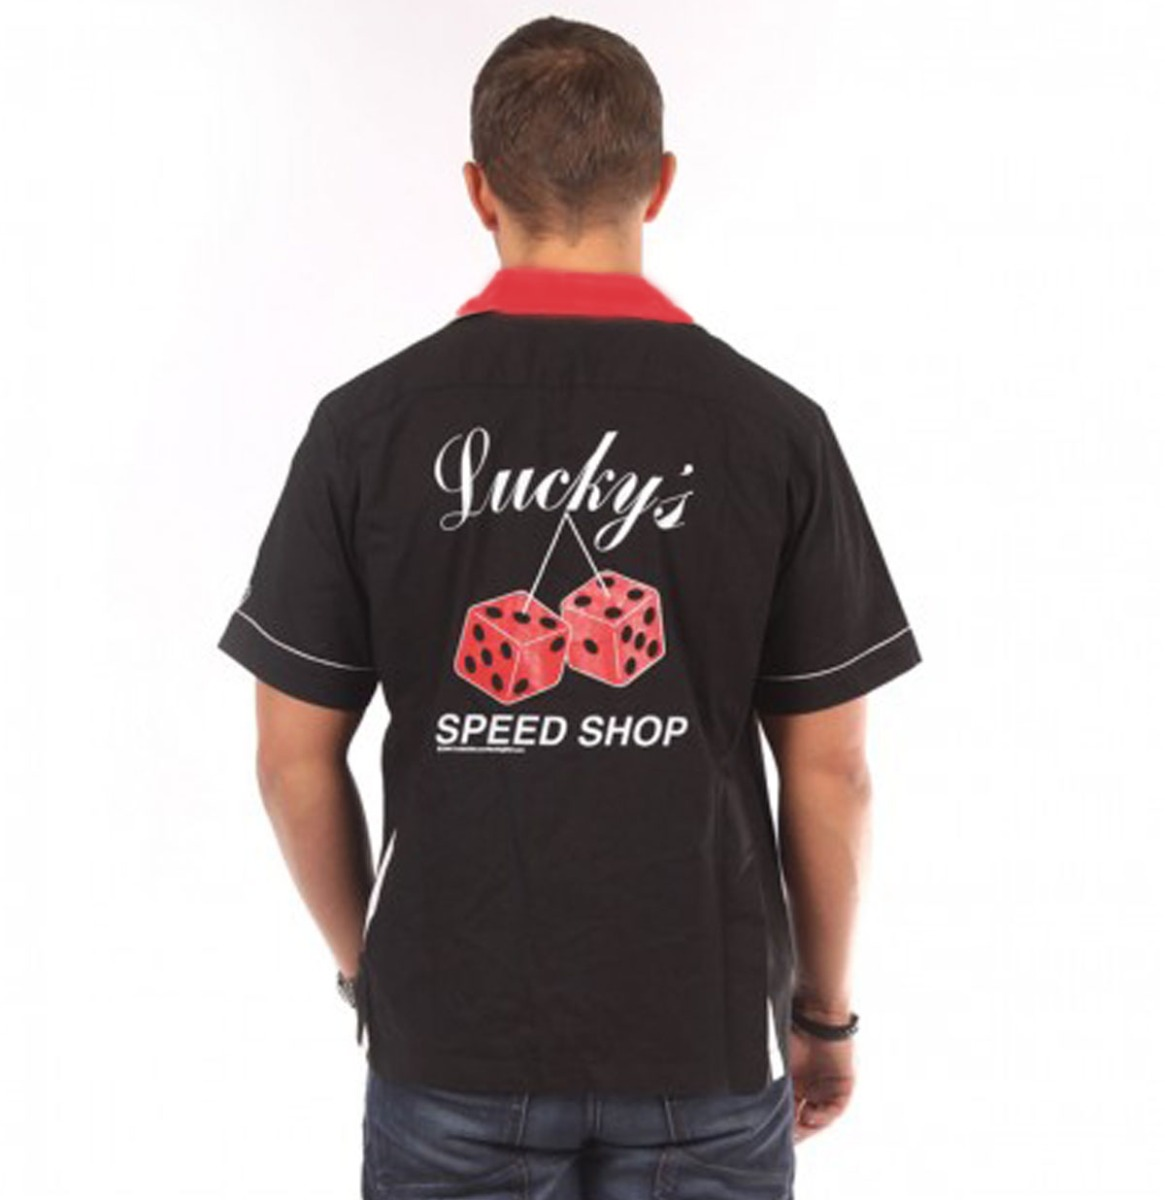 Lucky's Speed Shop Bowling Shirt Black - Red